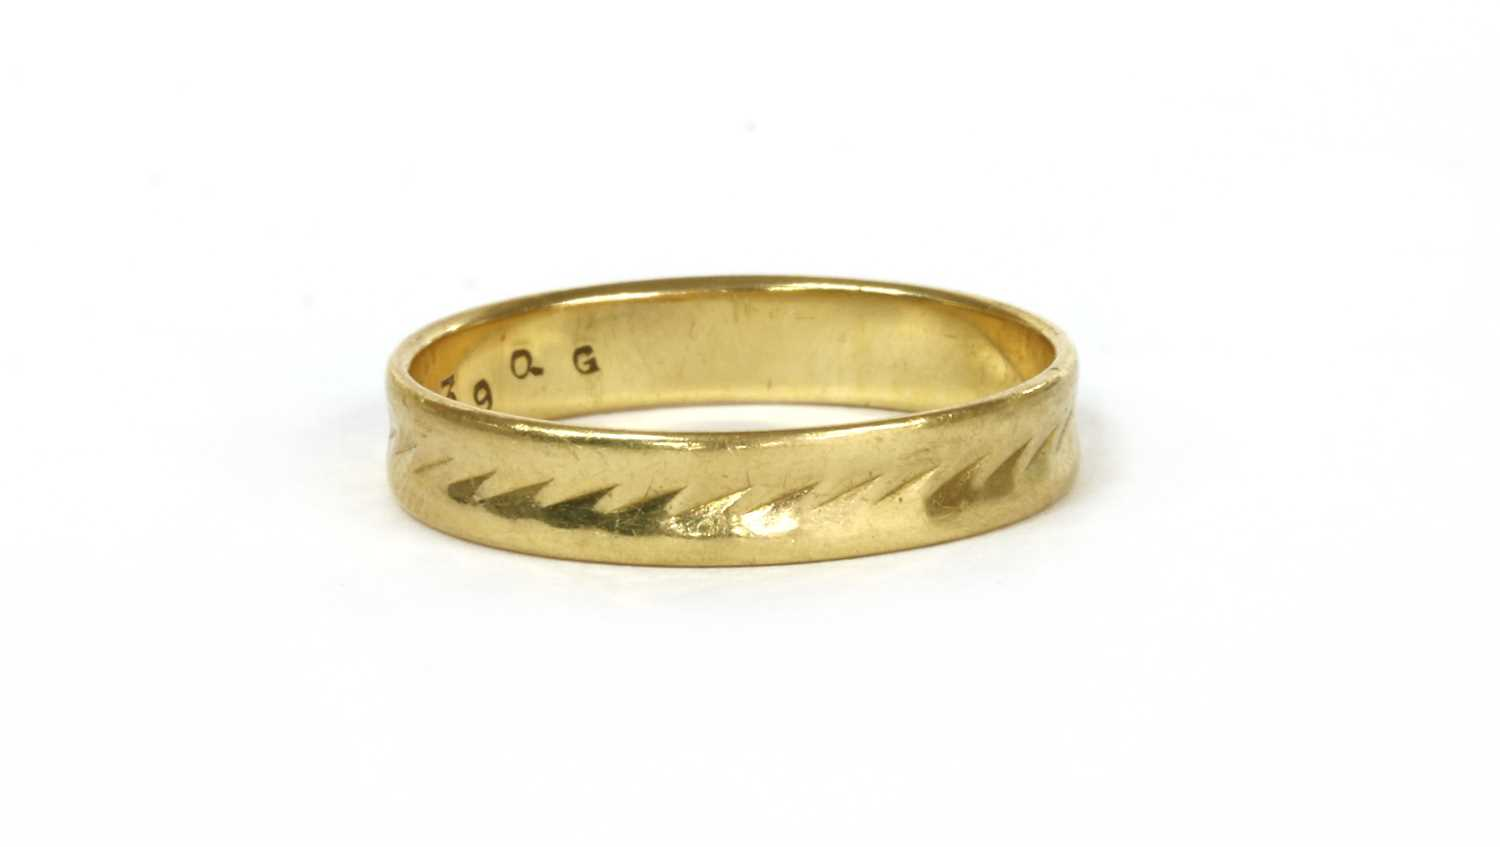 Lot 57 - An 18ct gold flat section patterned wedding ring